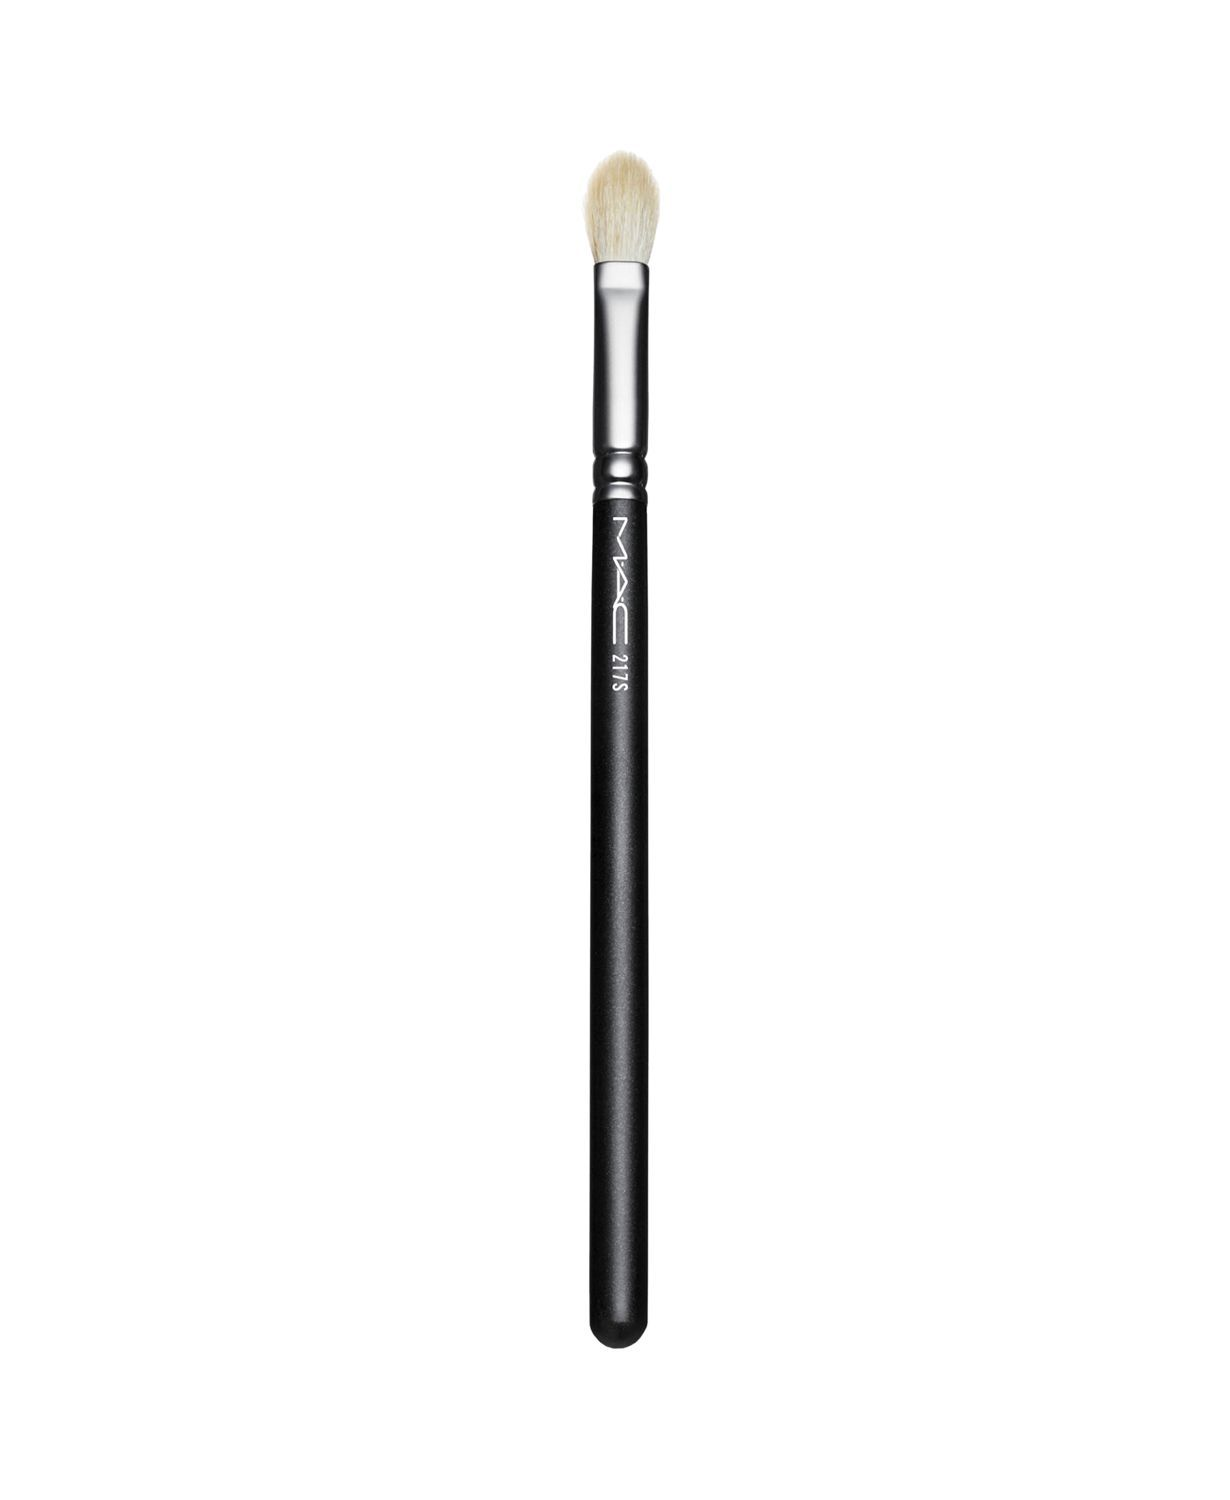 37 Best Makeup Brushes For 2021 Build